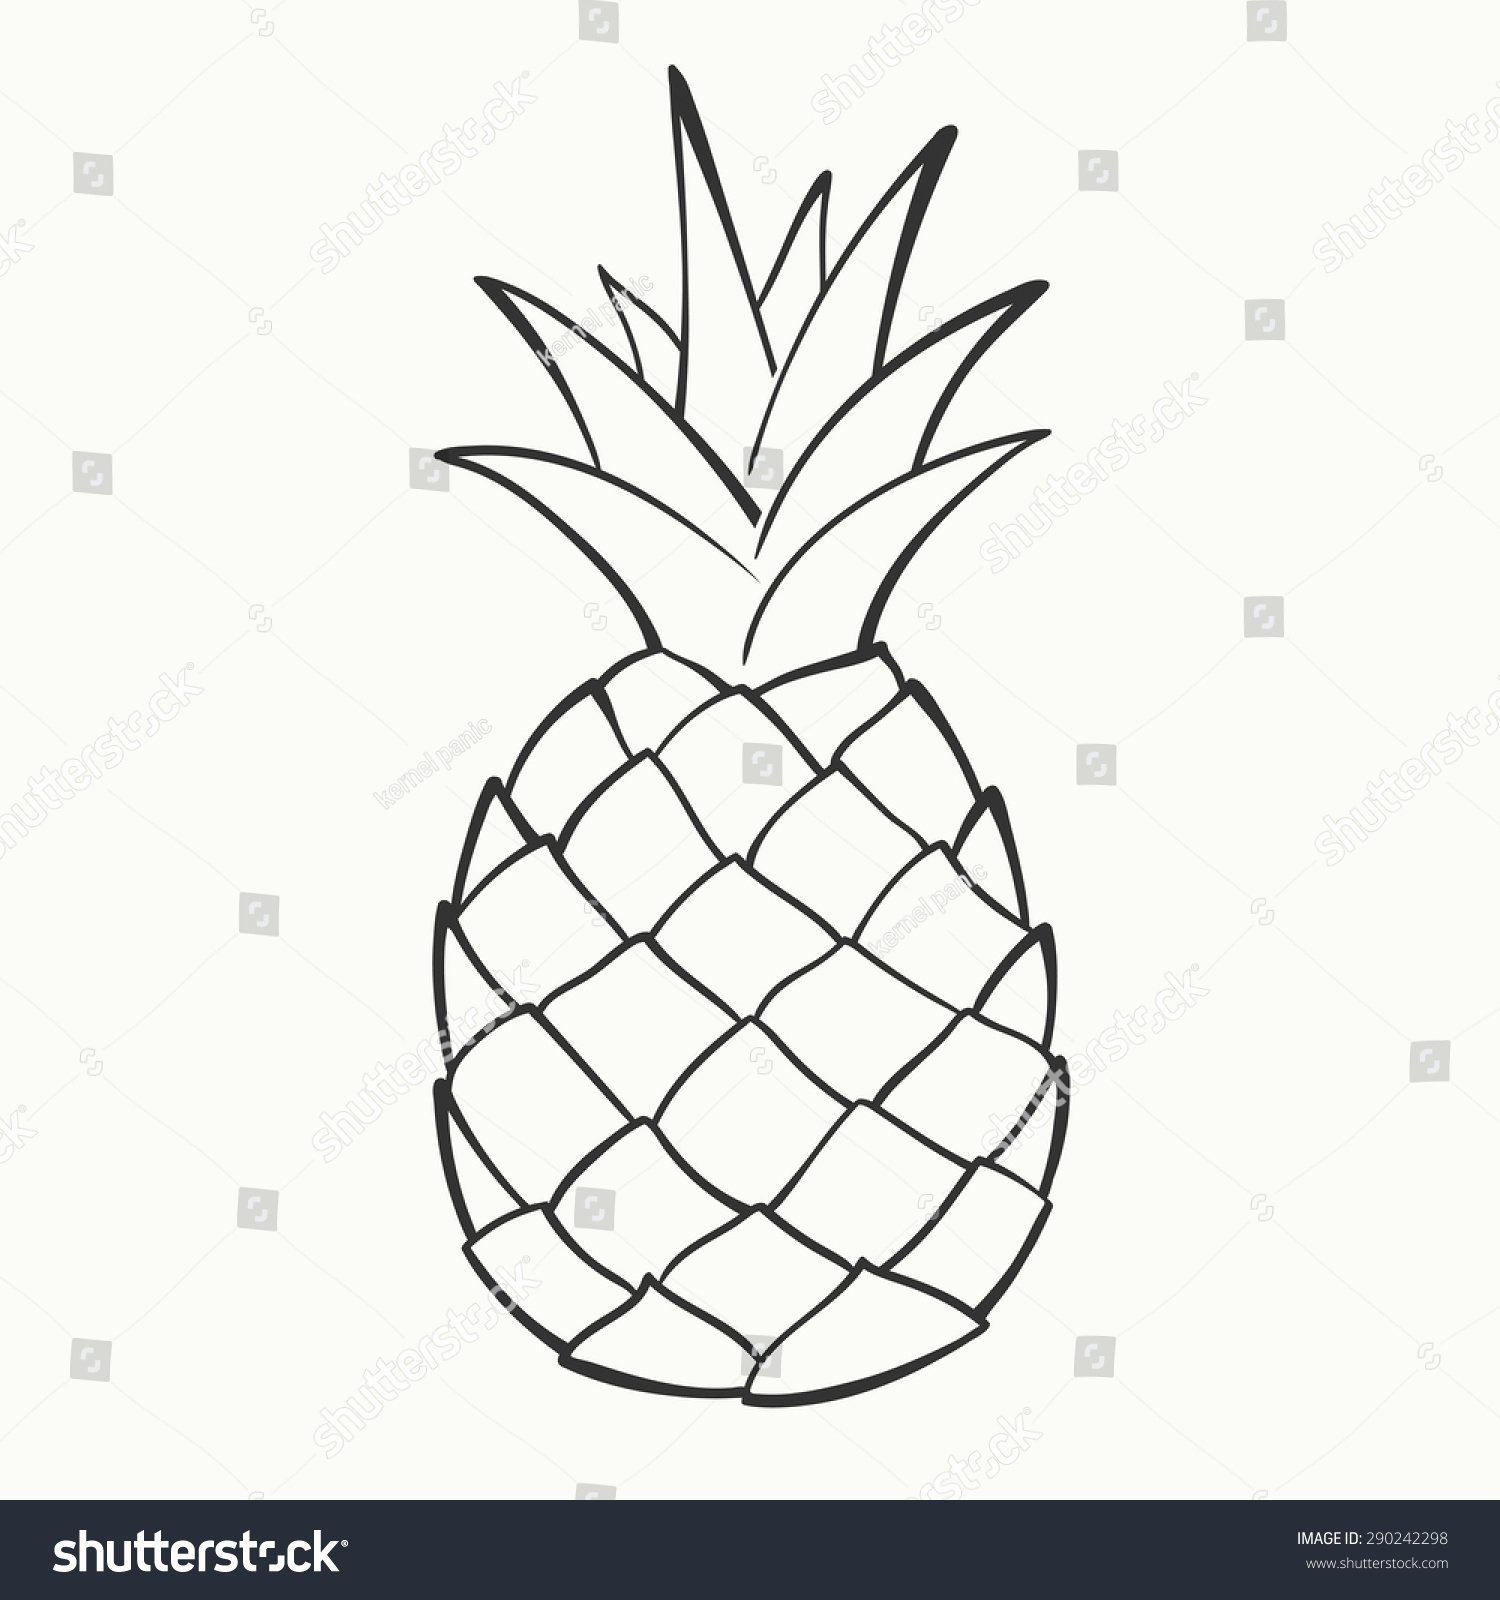 Pineapple Leaf Template New Outline Black White Image Pineapple Vector Stock Vector